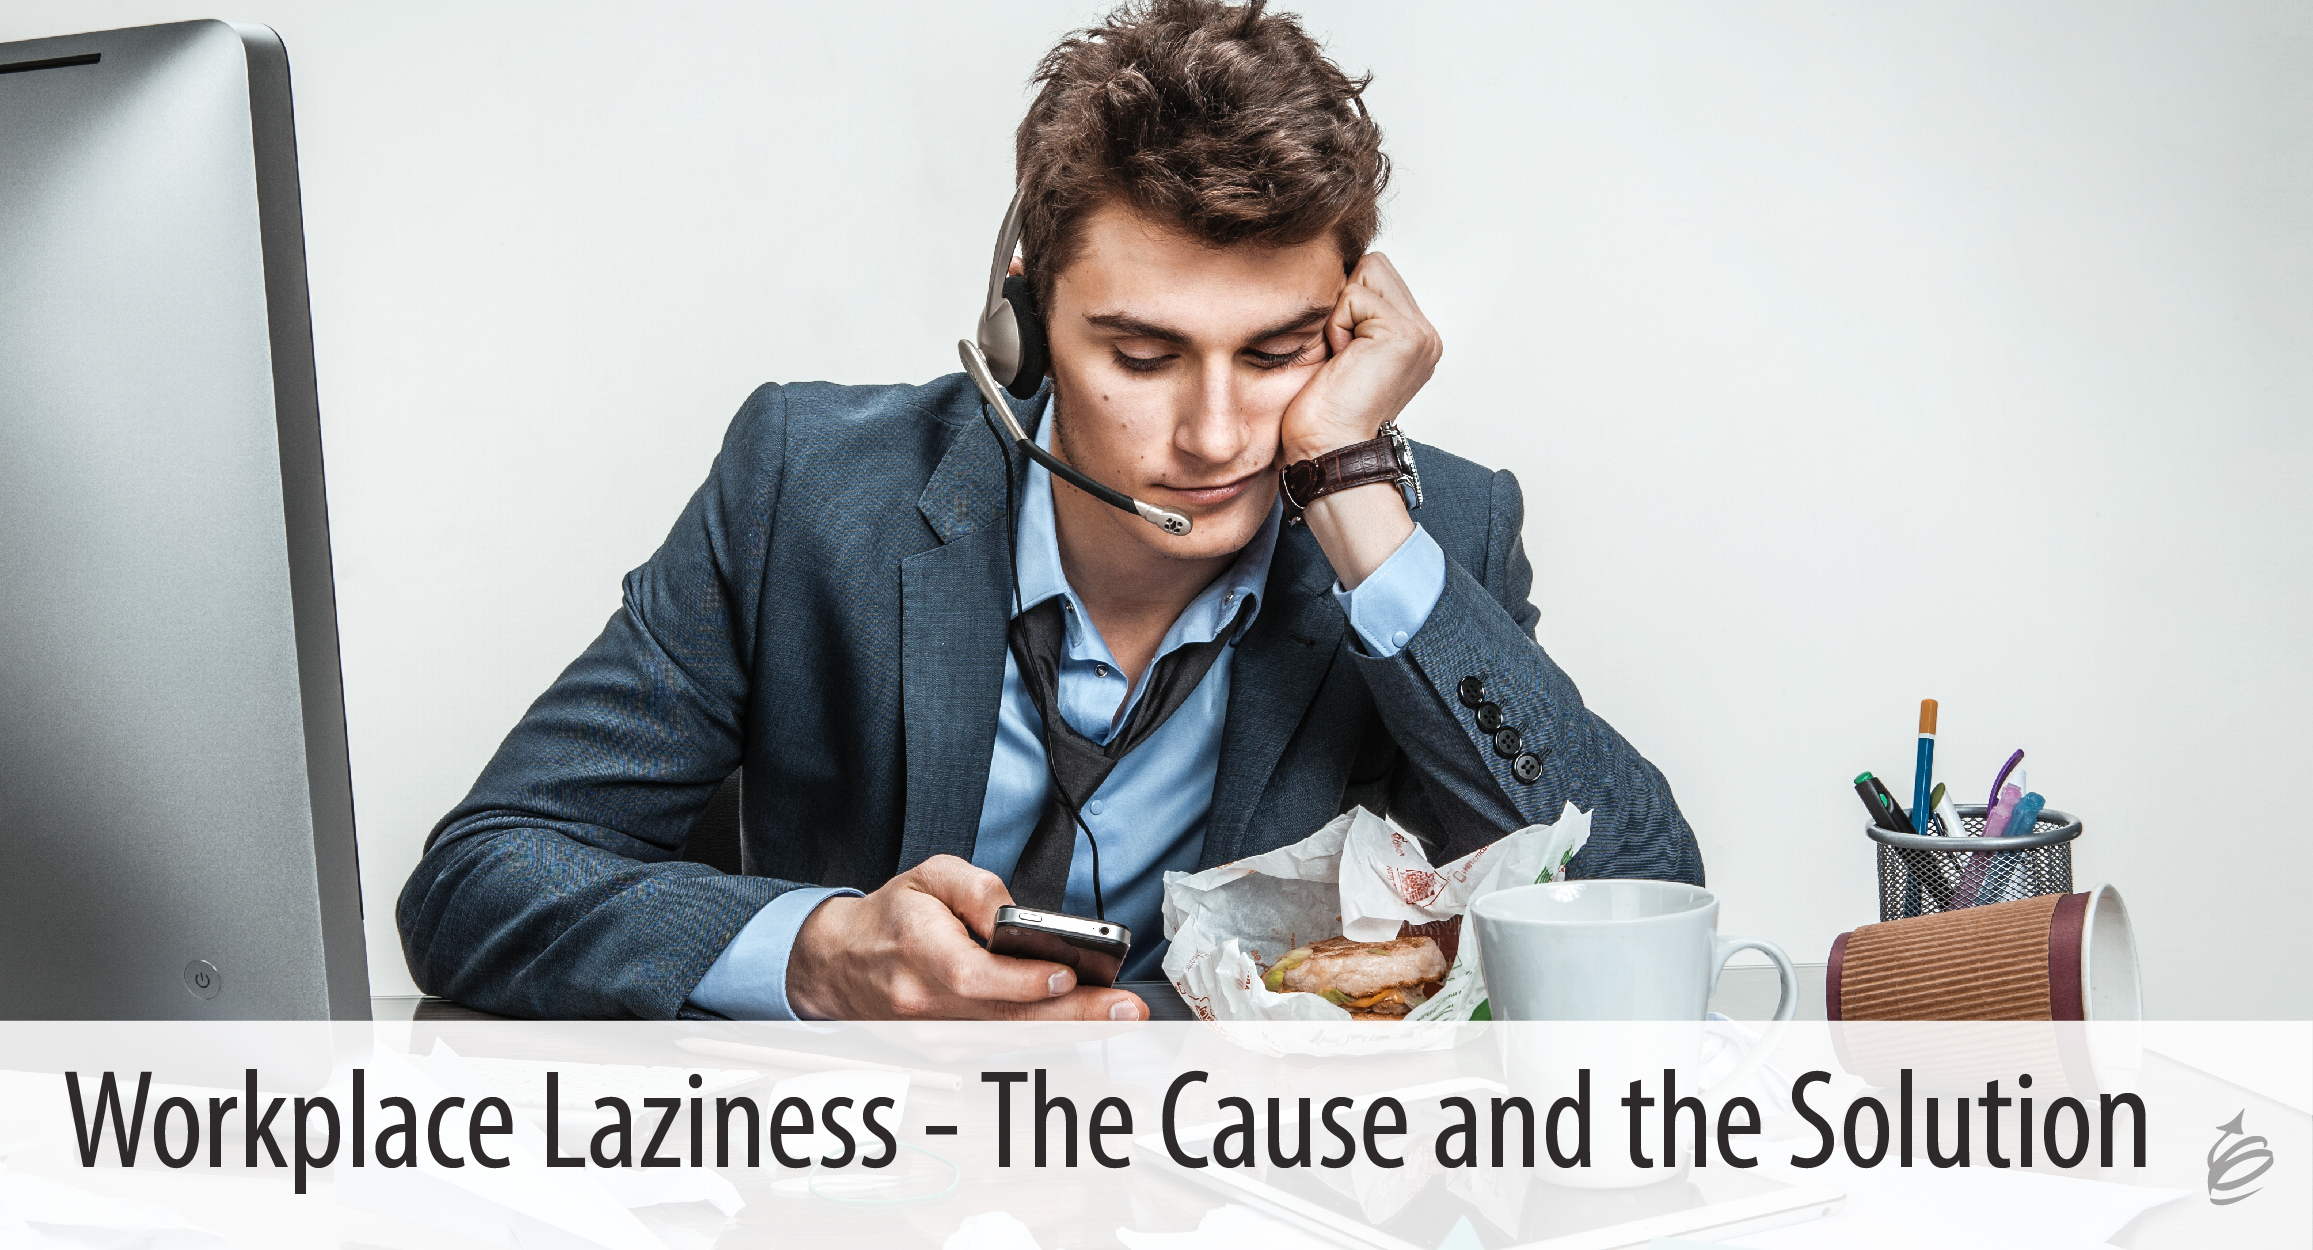 laziness caused by technology Laziness due to technology page 33 was a perfect example of the laziness technology laziness is another element which can be caused by technology.